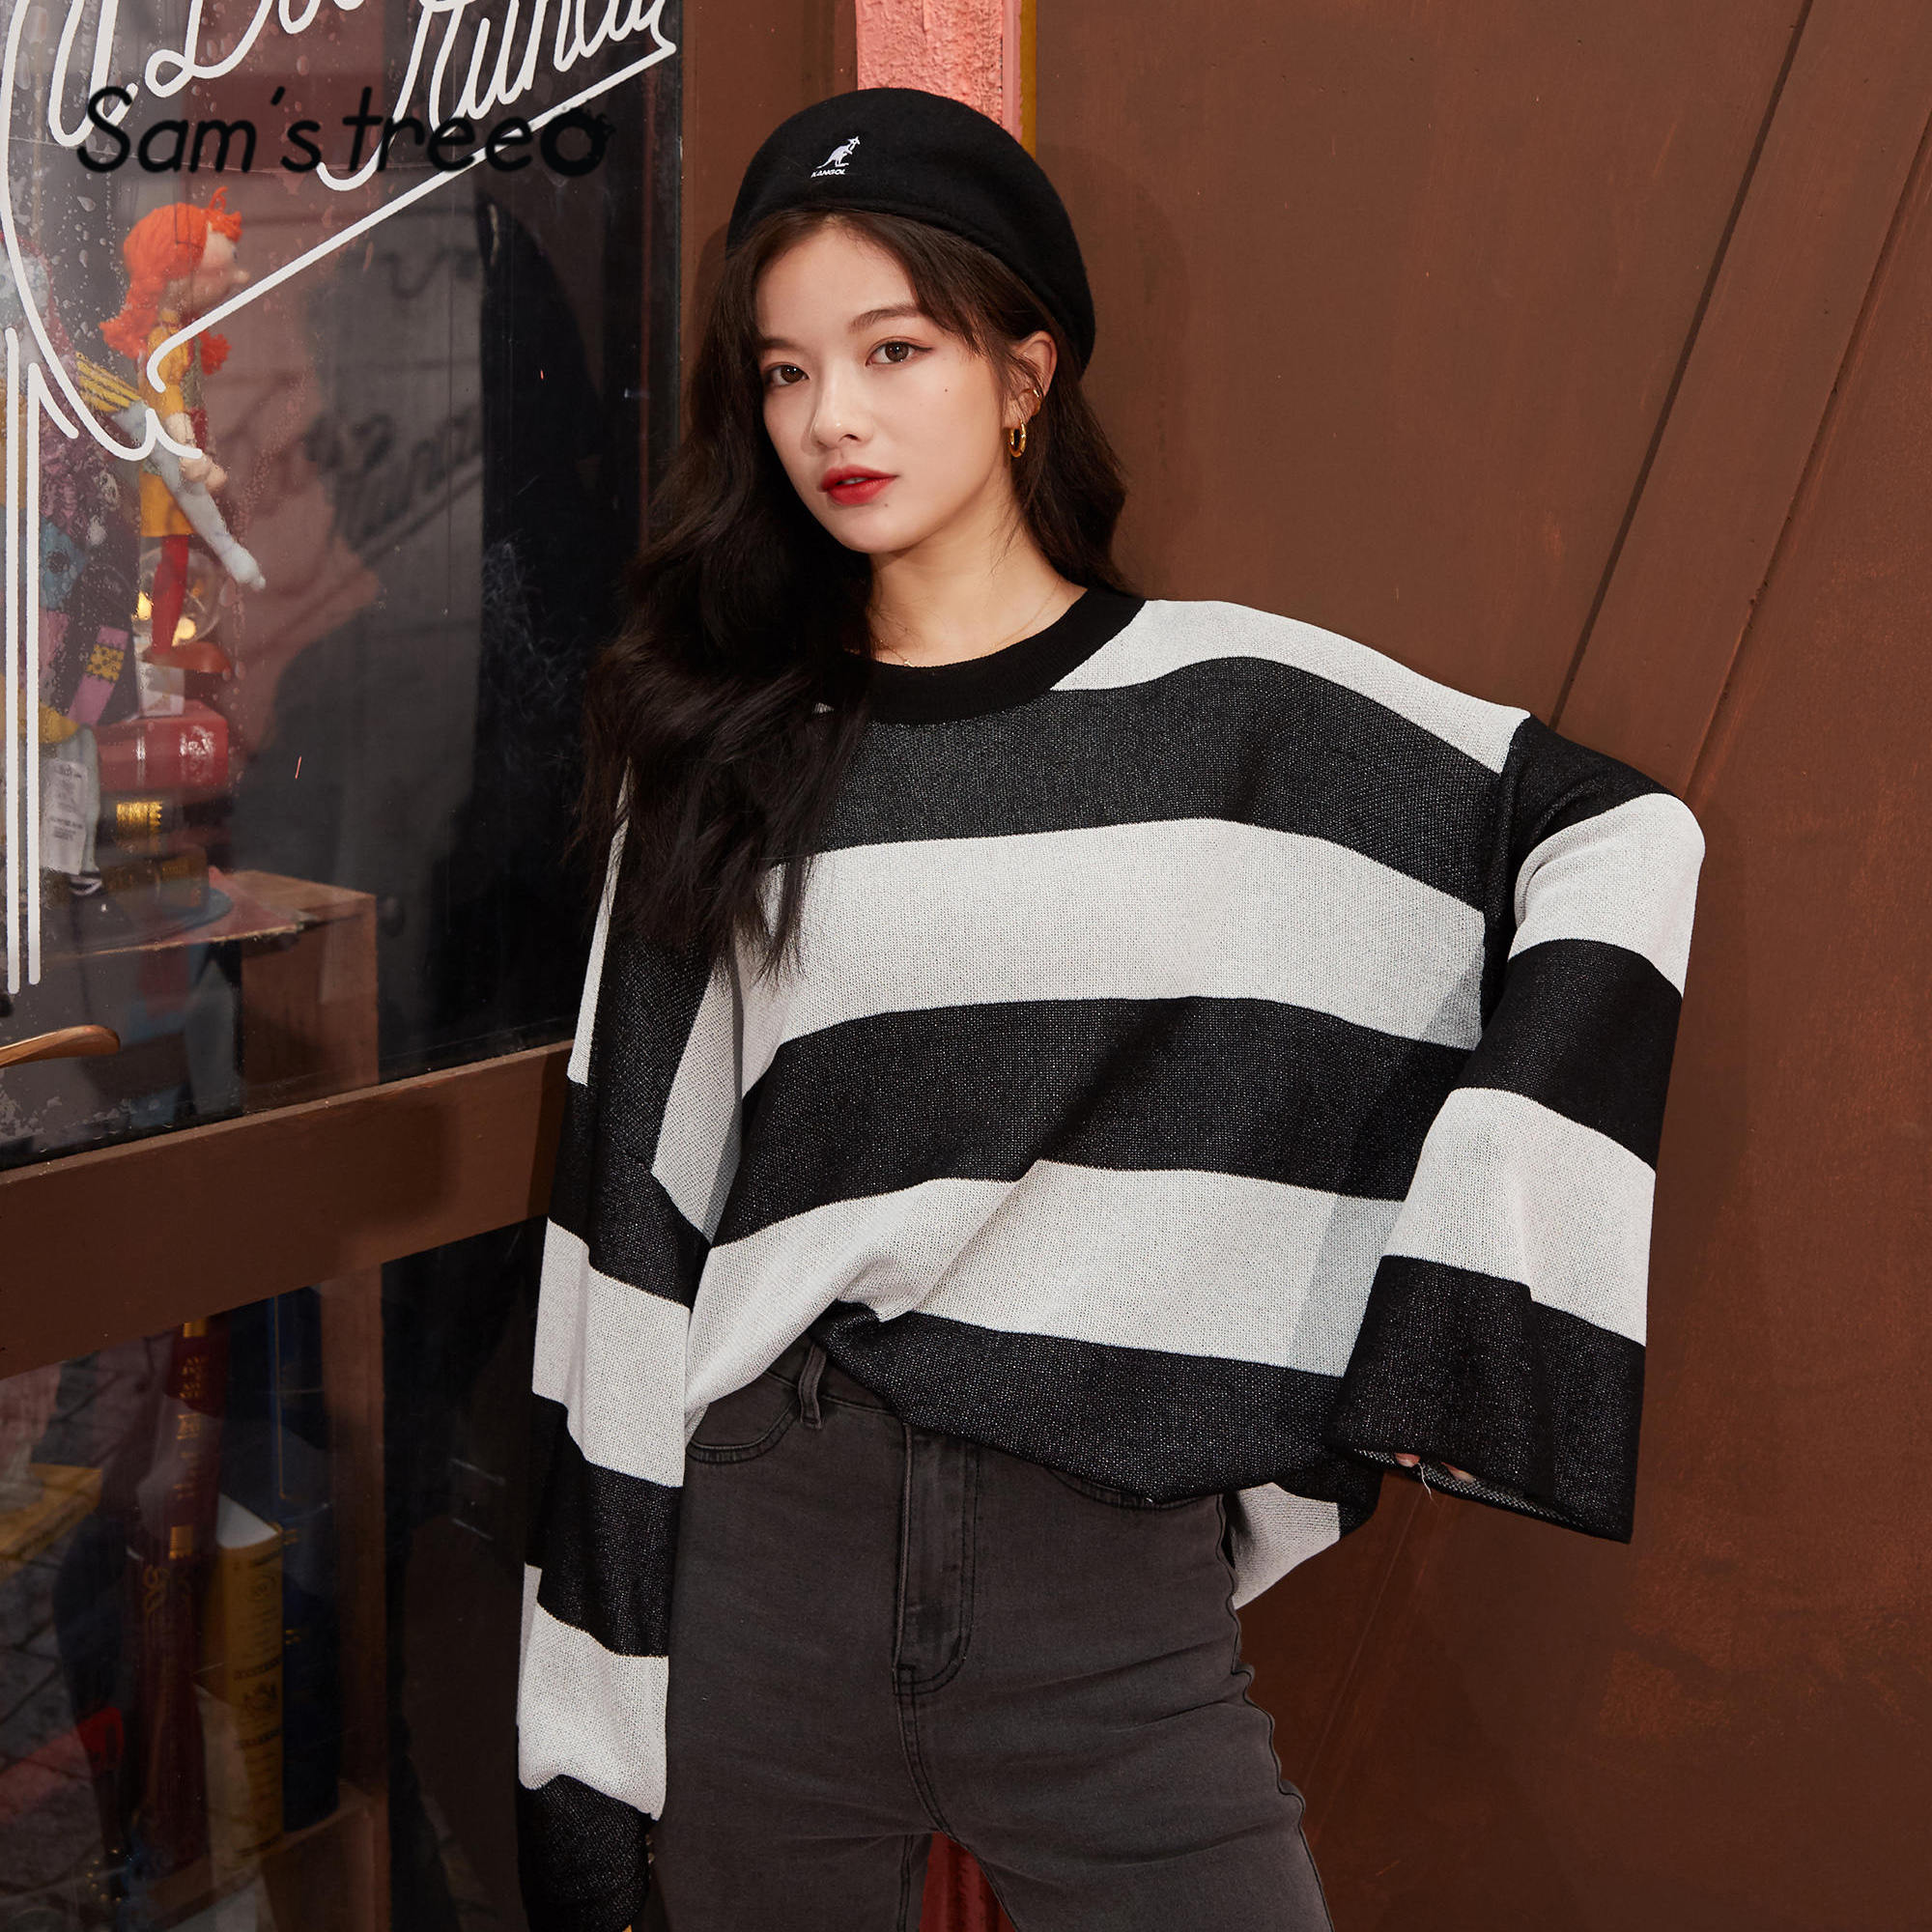 SAM'S TREE Apricot Colorblock Striped Knit Loose Casual Women Sweater 2020 Spring New Black Long Sleeve Korean Ladies Basic Tops